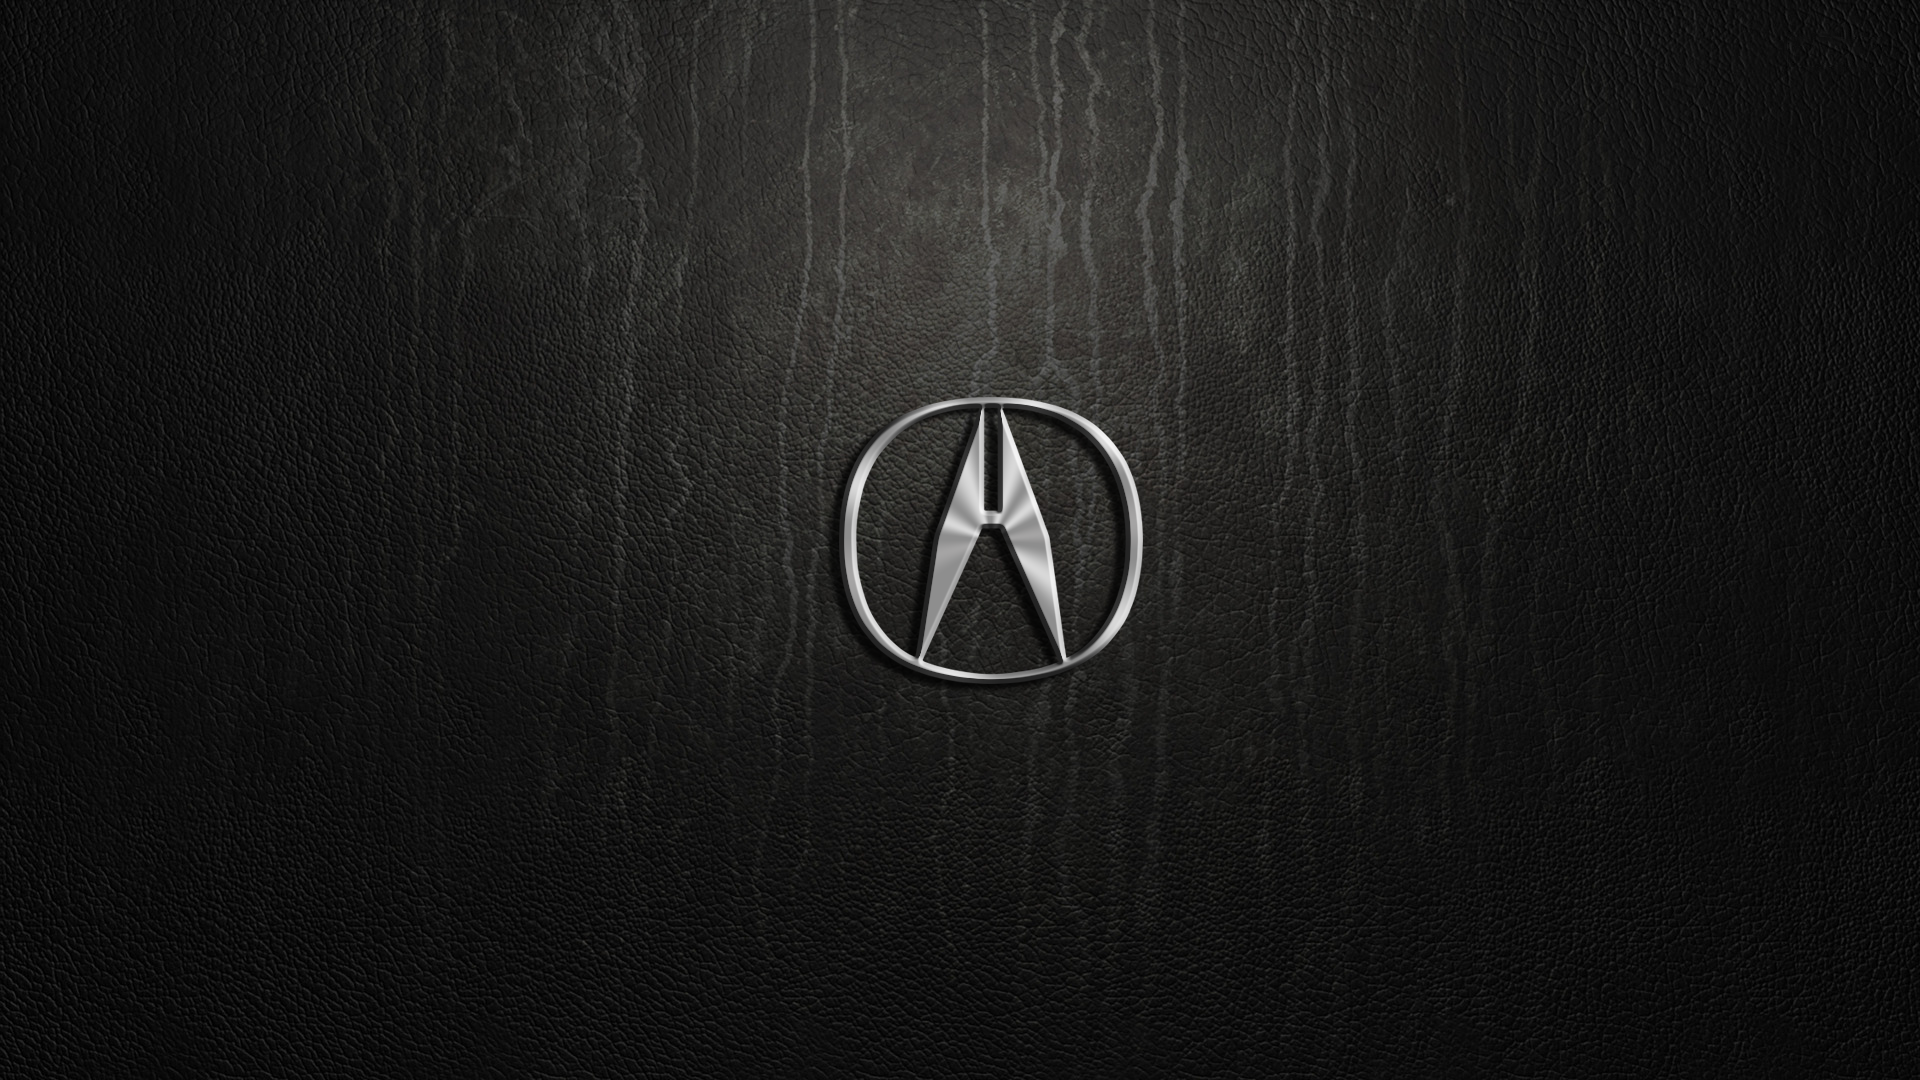 Acura HD Wallpapers